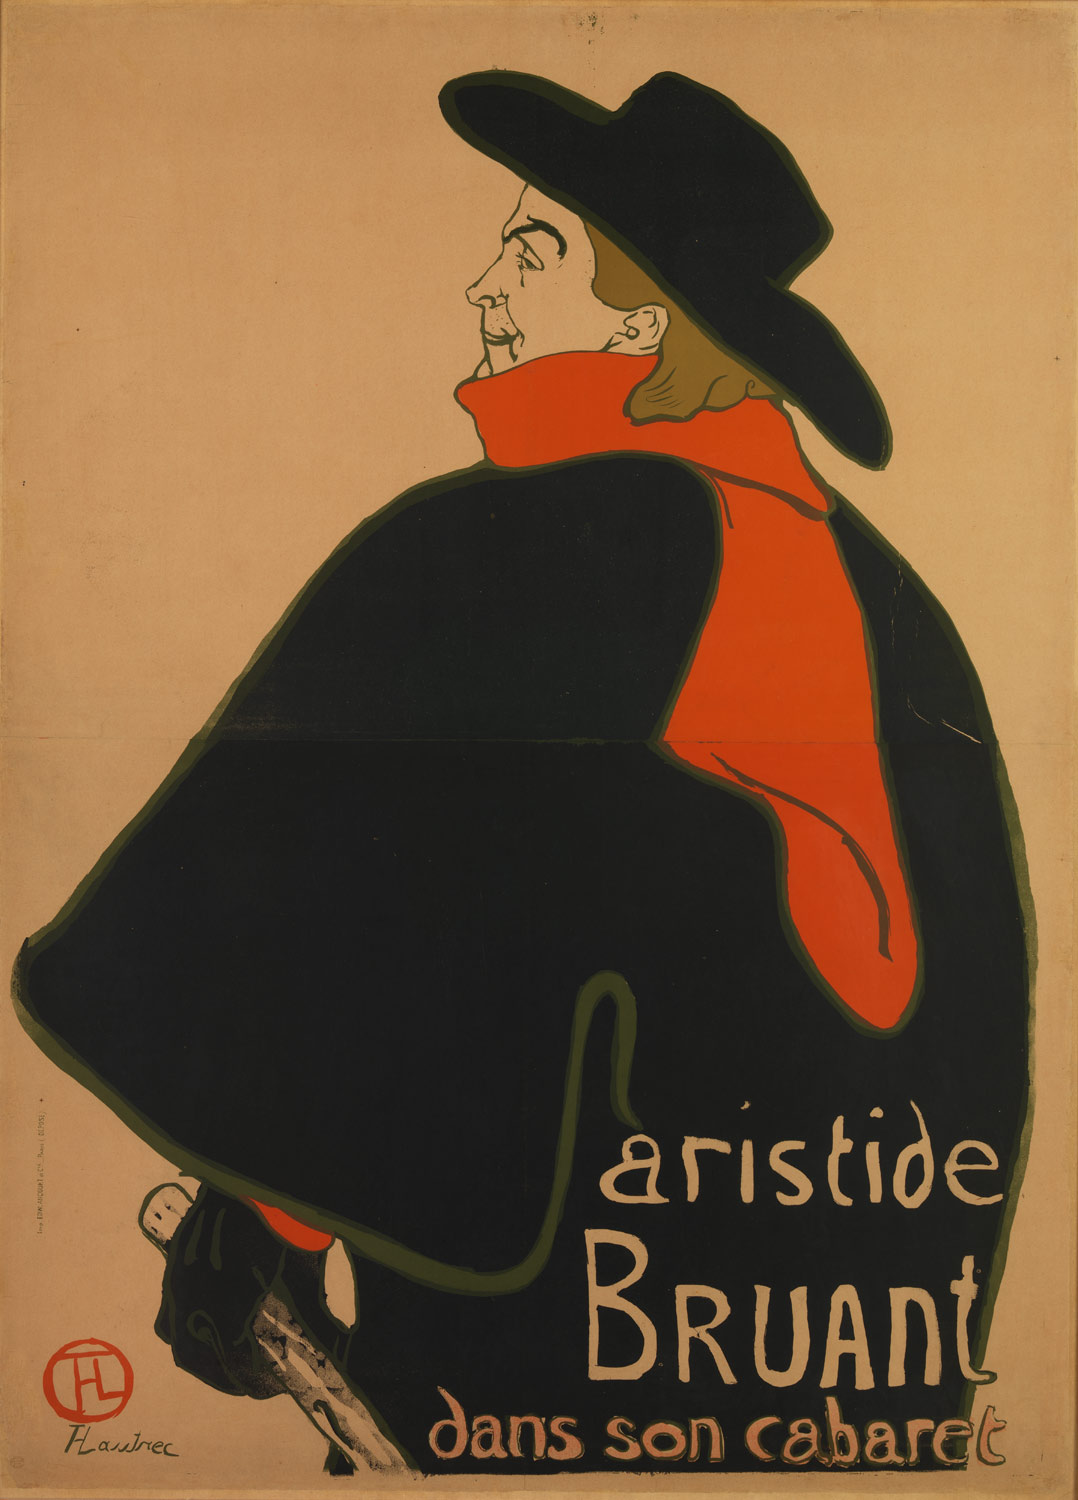 Aristide Bruant, at His Cabaret